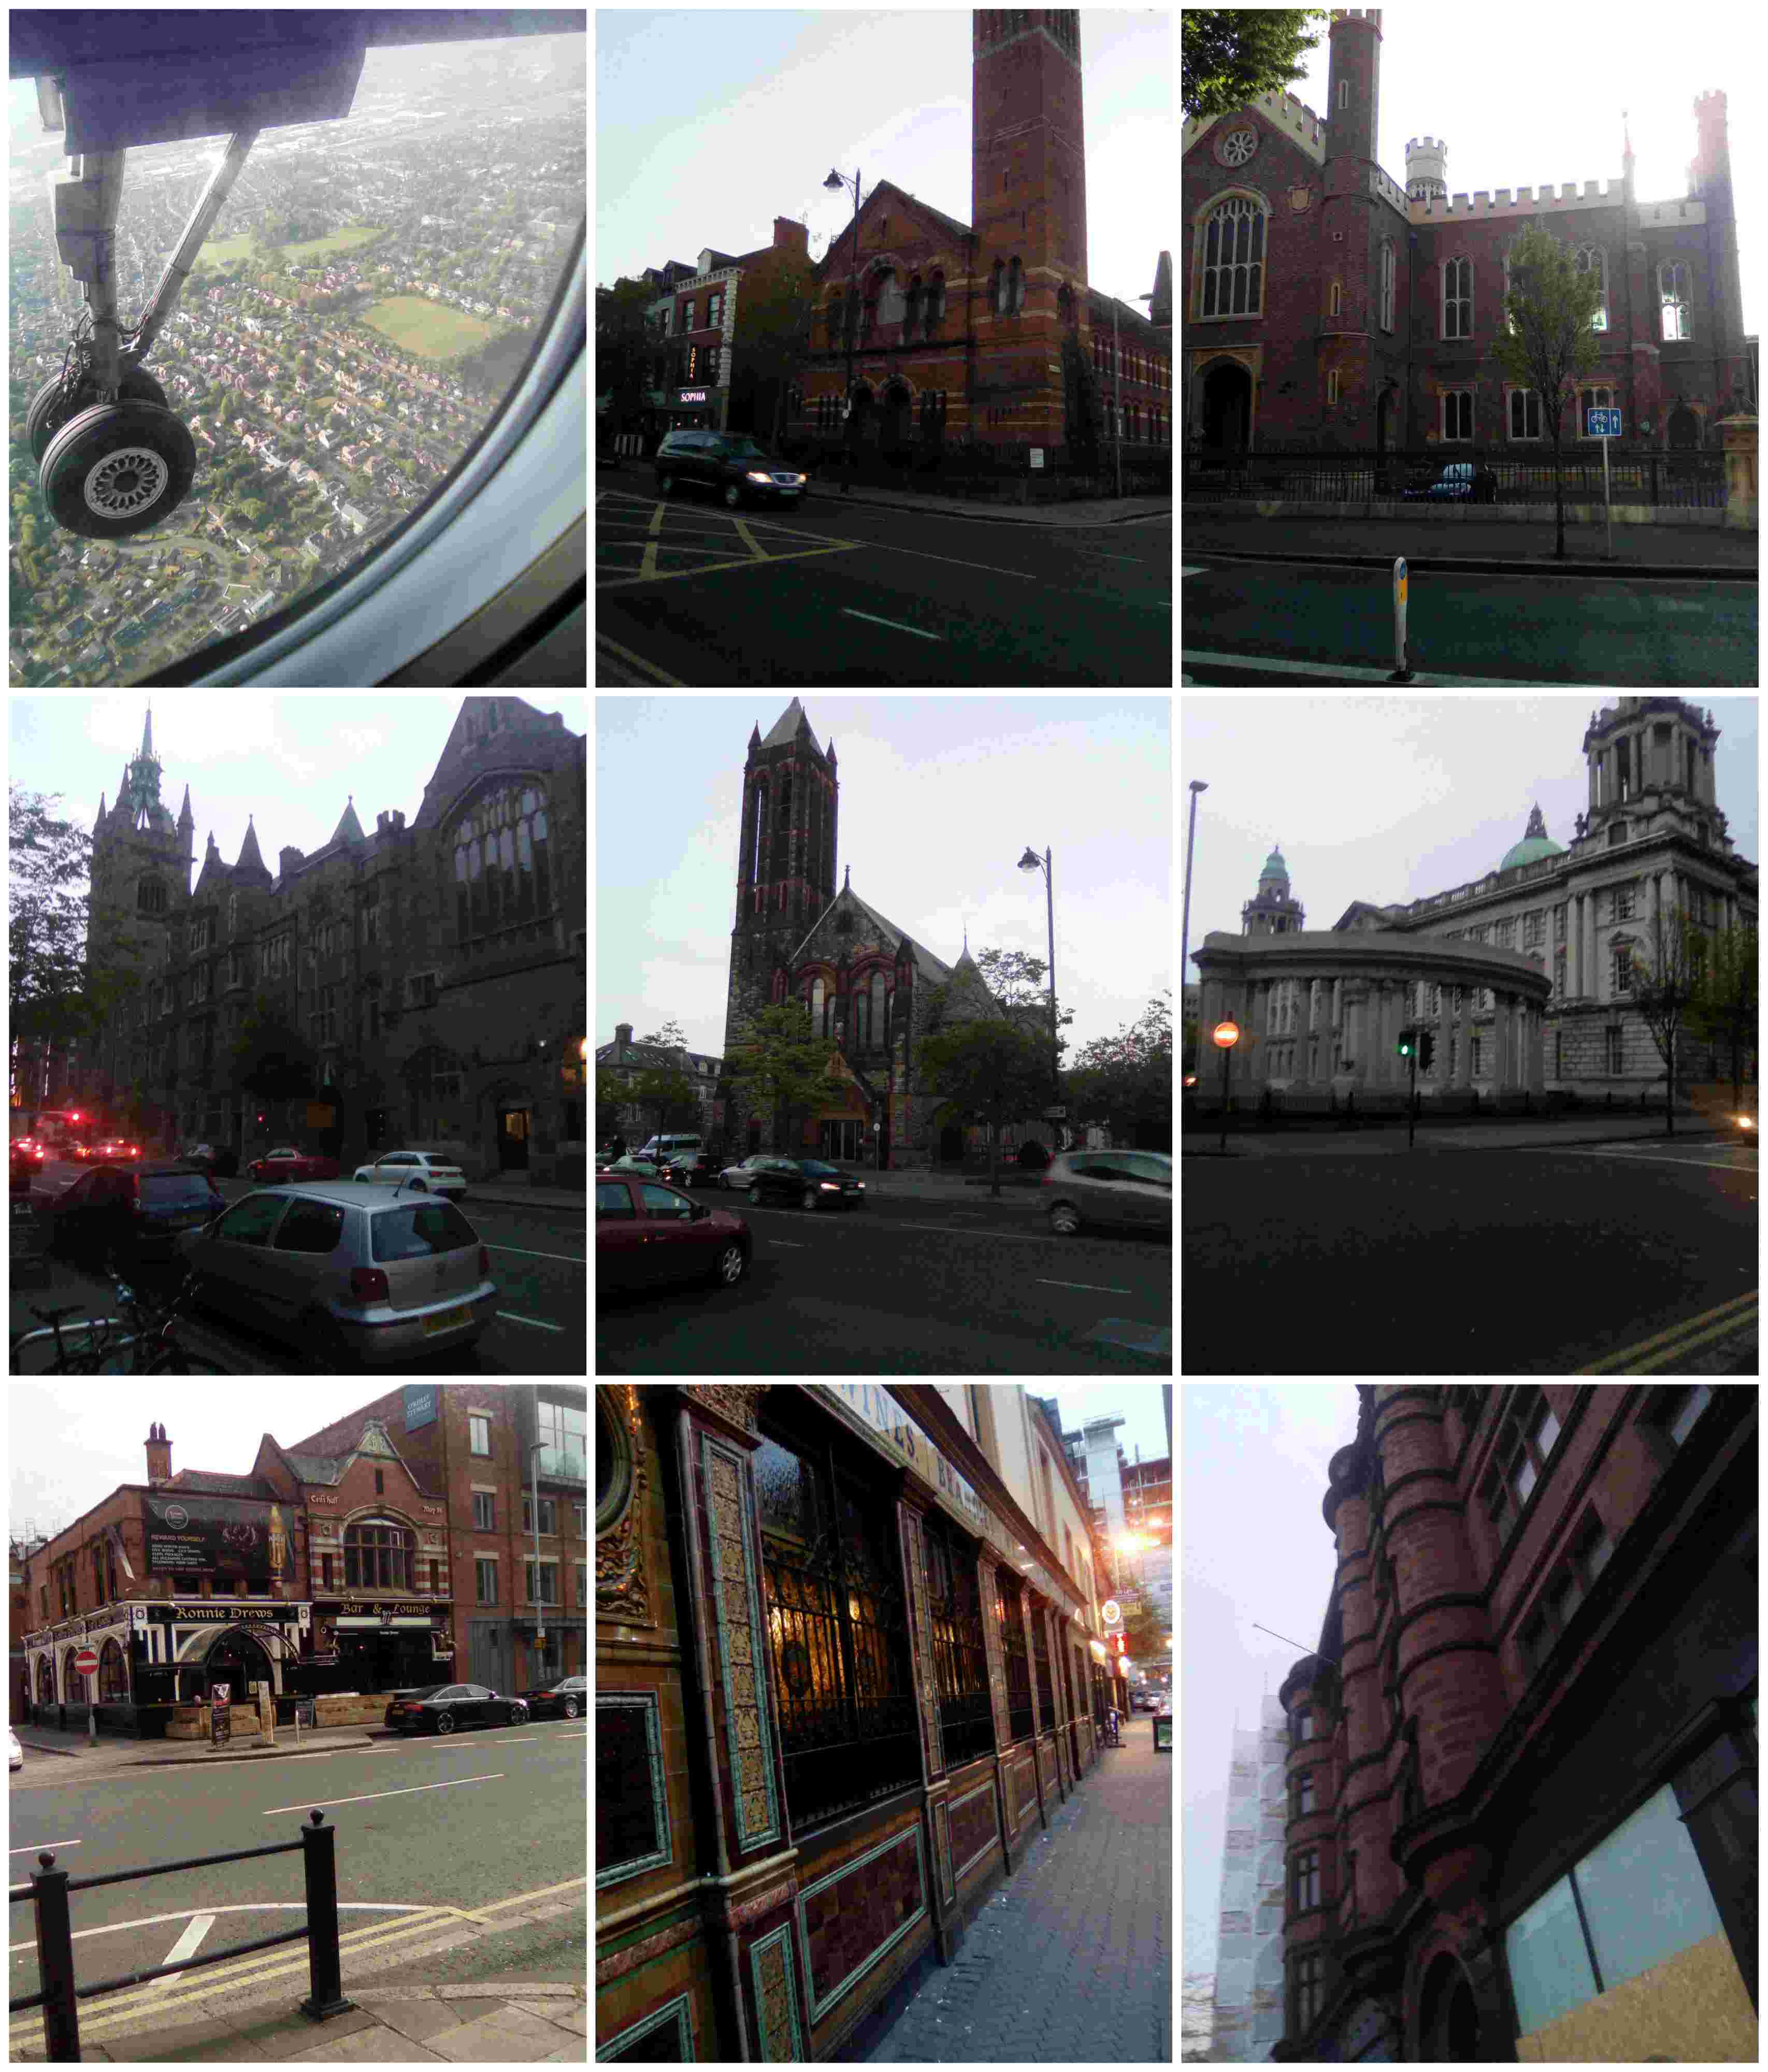 Belfast churches and pubs